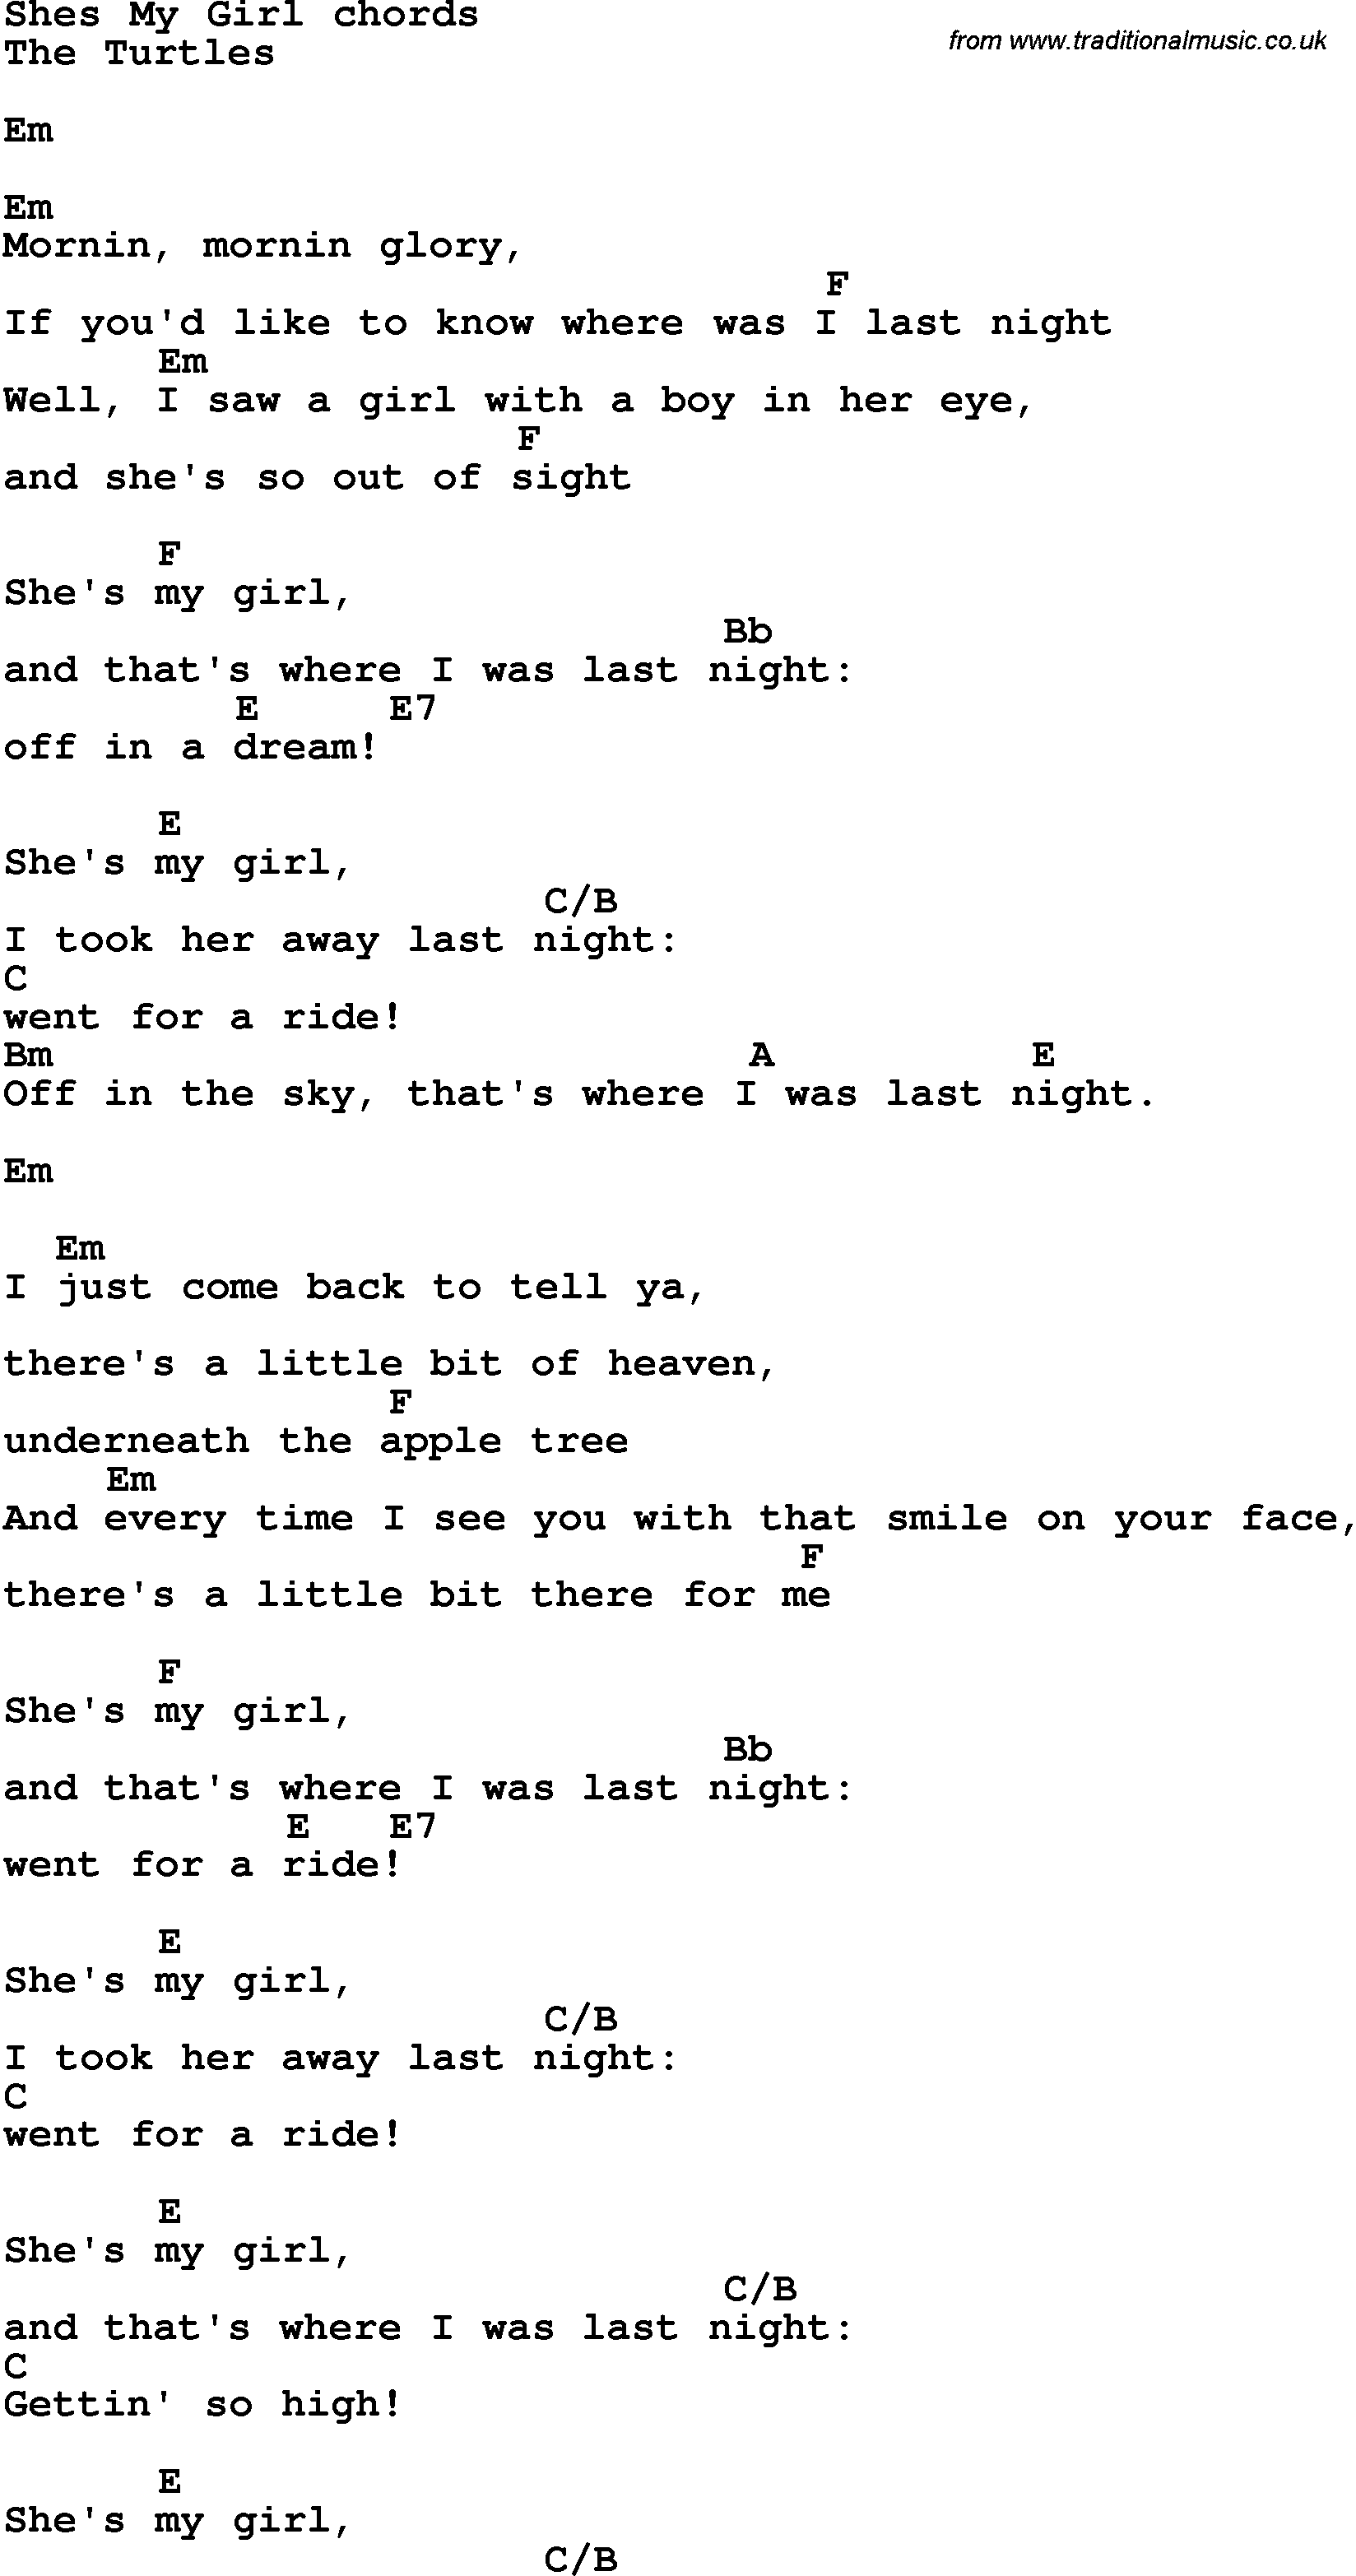 Song Lyrics With Guitar Chords For Shes My Girl